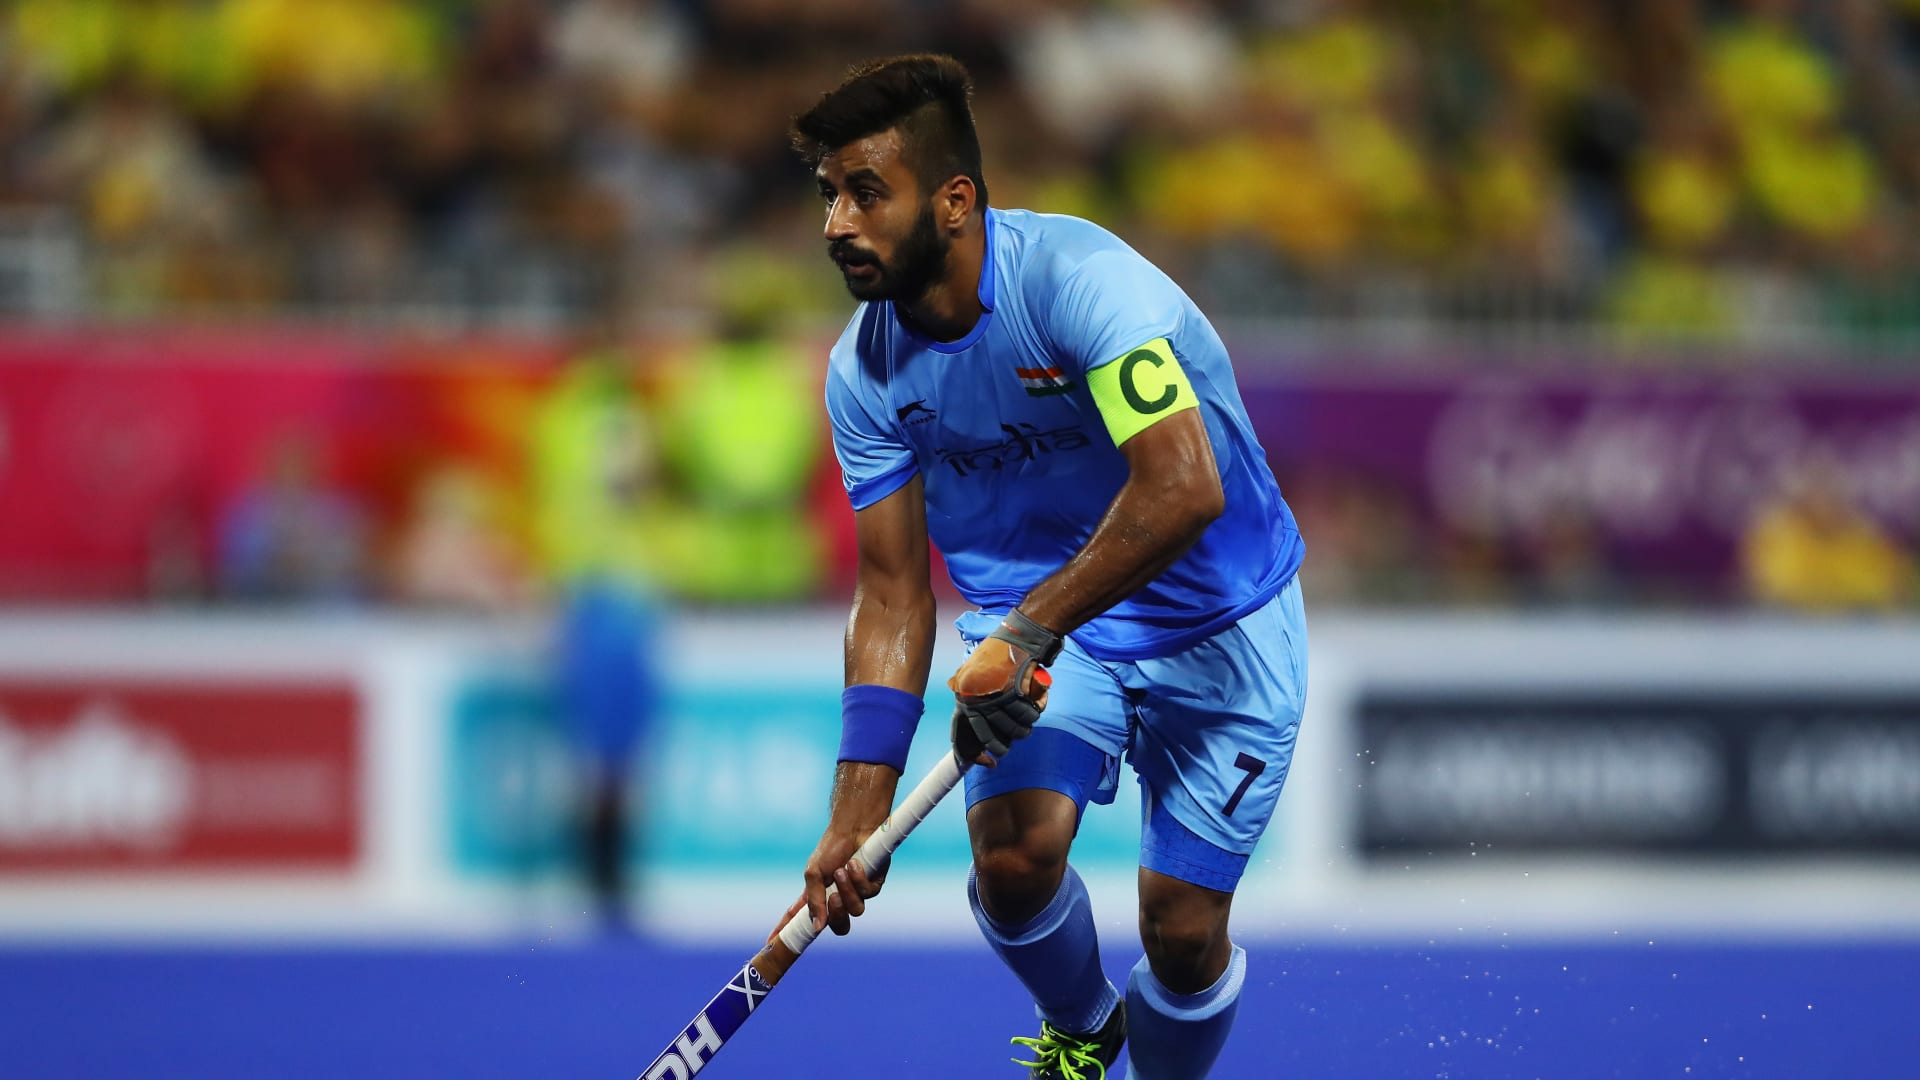 Indian Hockey Captain Manpreet Singh Aiming For Success In 2020